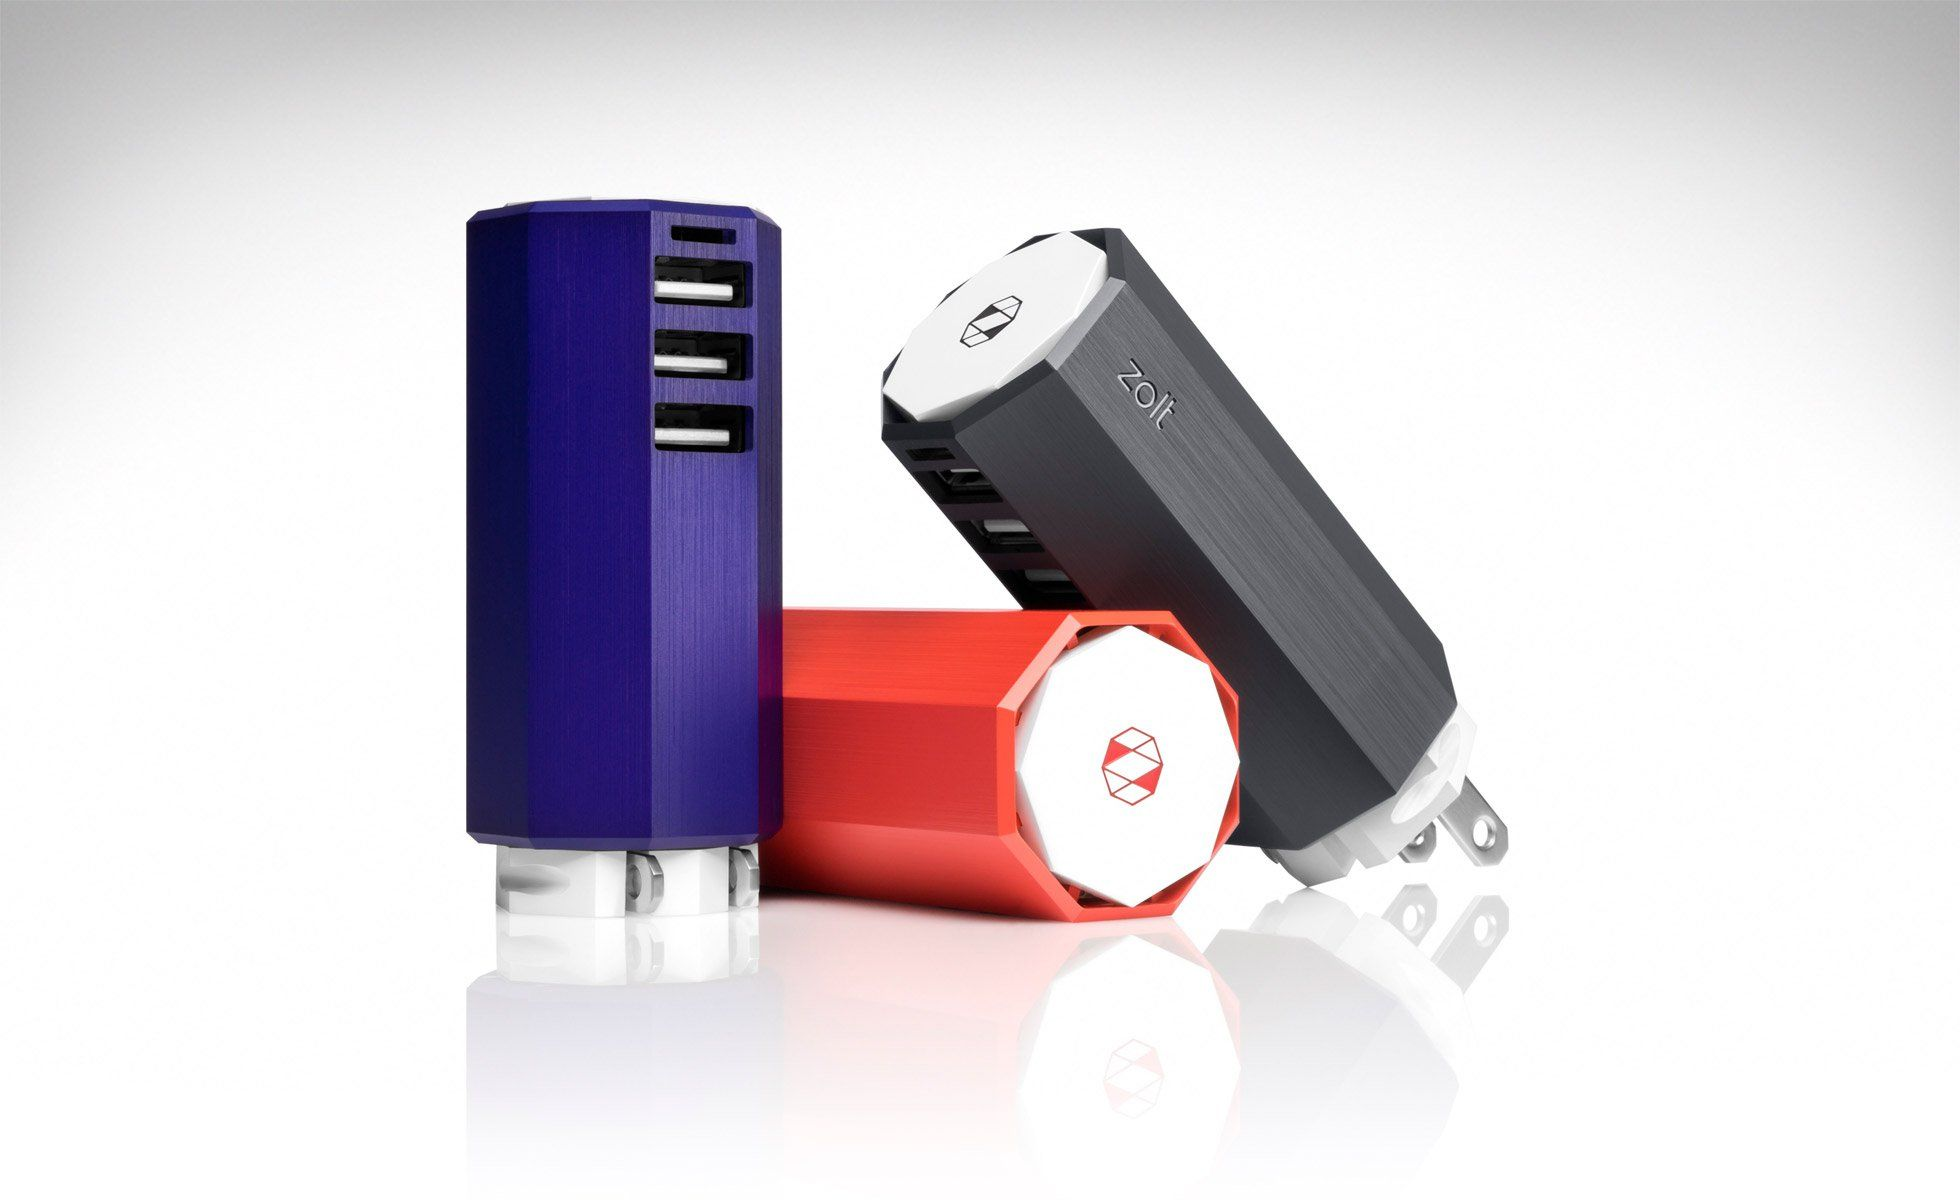 Zolt Laptop Charger Laptop charger, Usb, Portable charger